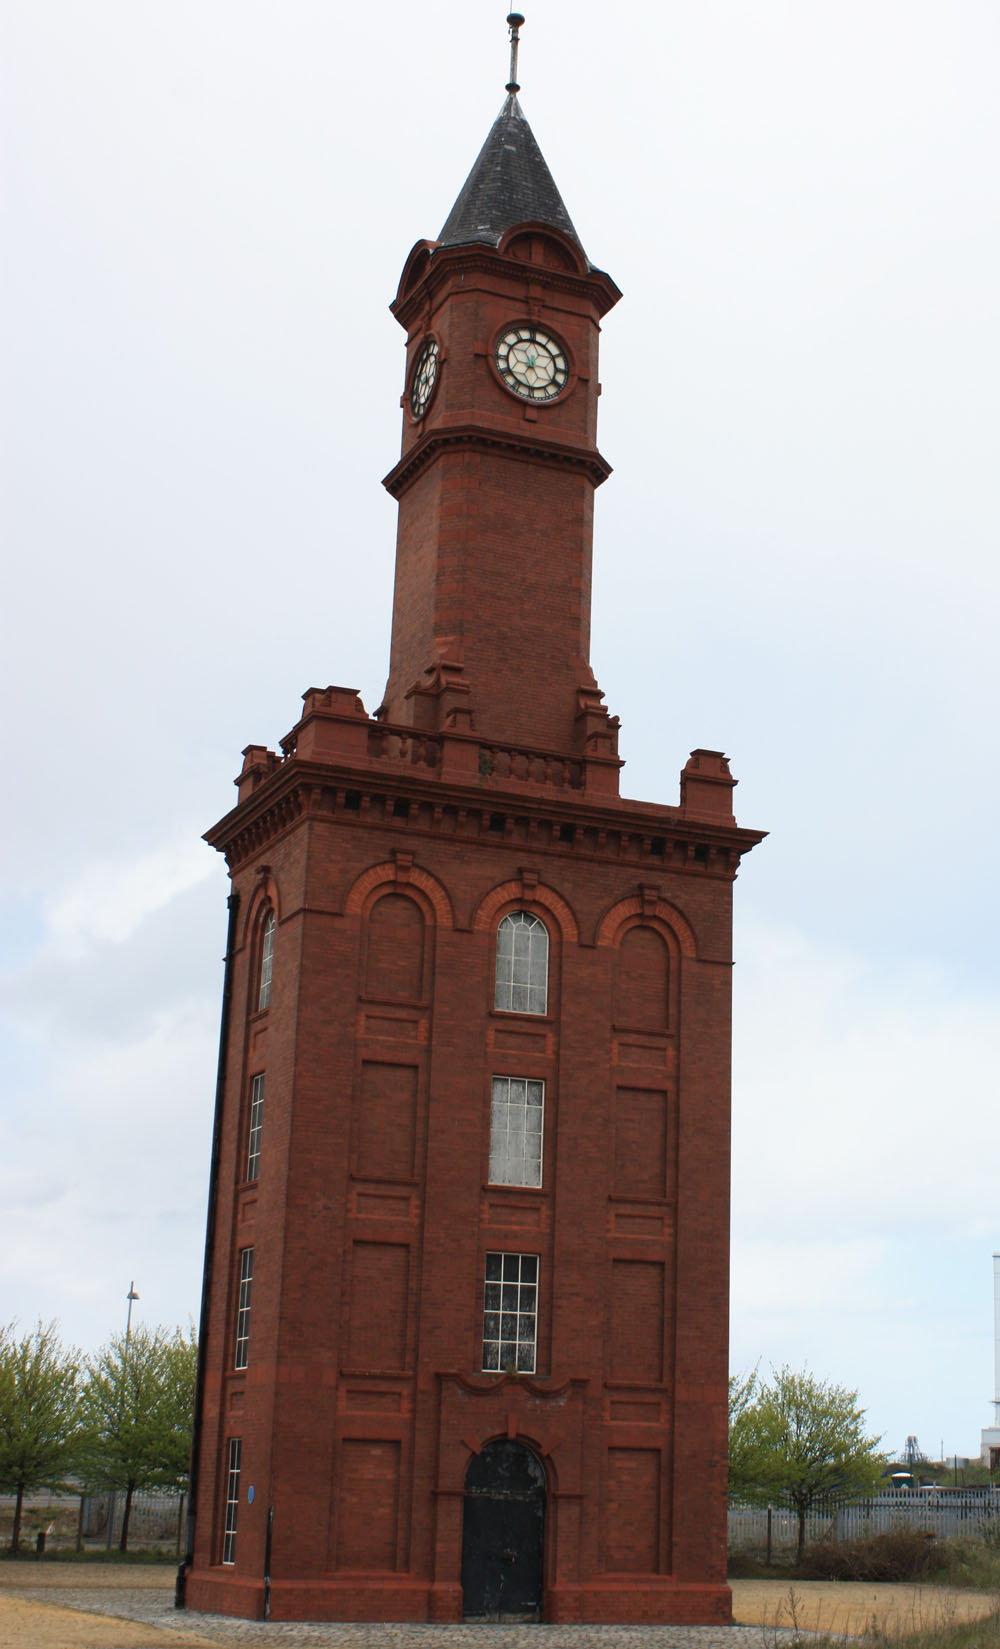 Dock Clock Tower, Middlesbrough